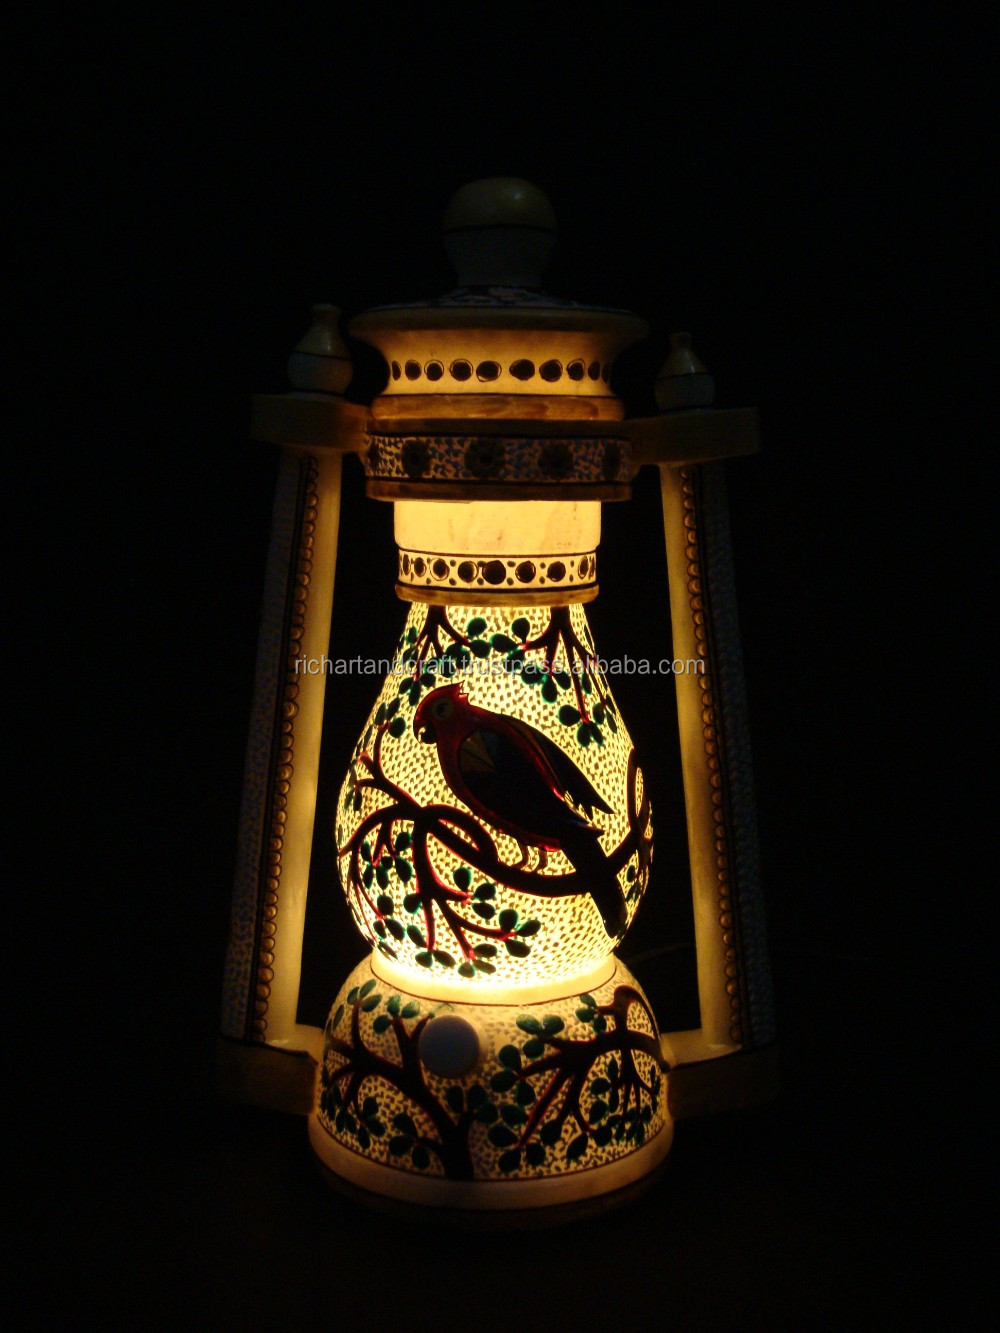 Natural Rich Arts And Crafts Marble Stone Night Lamp Home Decor Gift xmas gift Handmade lantern